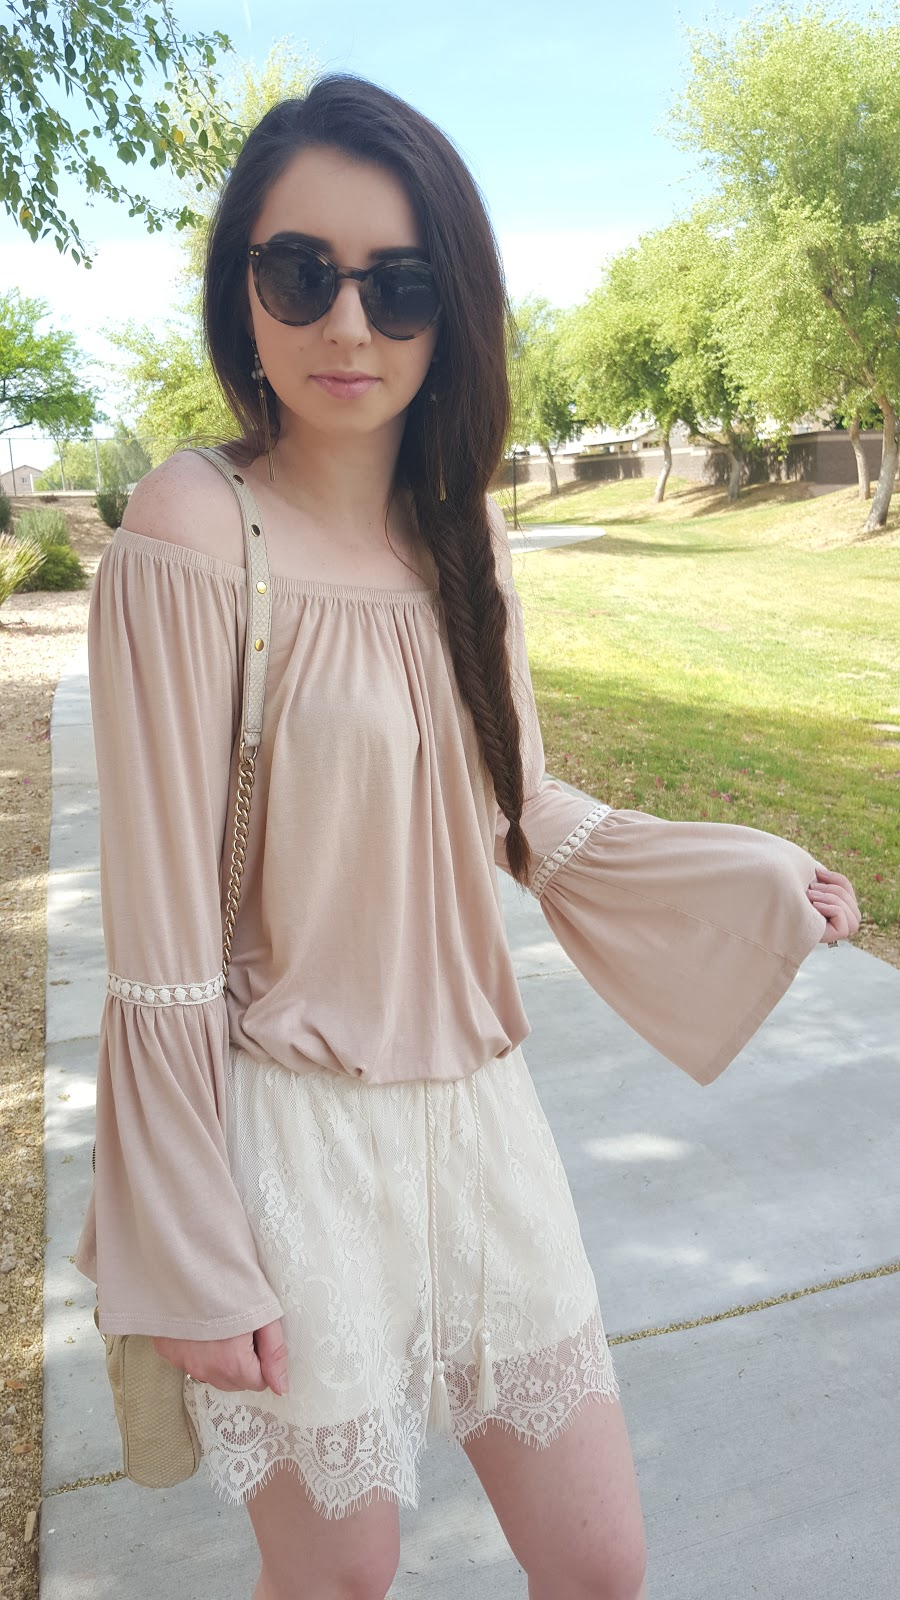 pretty boho outfit with bell sleeve top, fish tail braid, and lace shorts